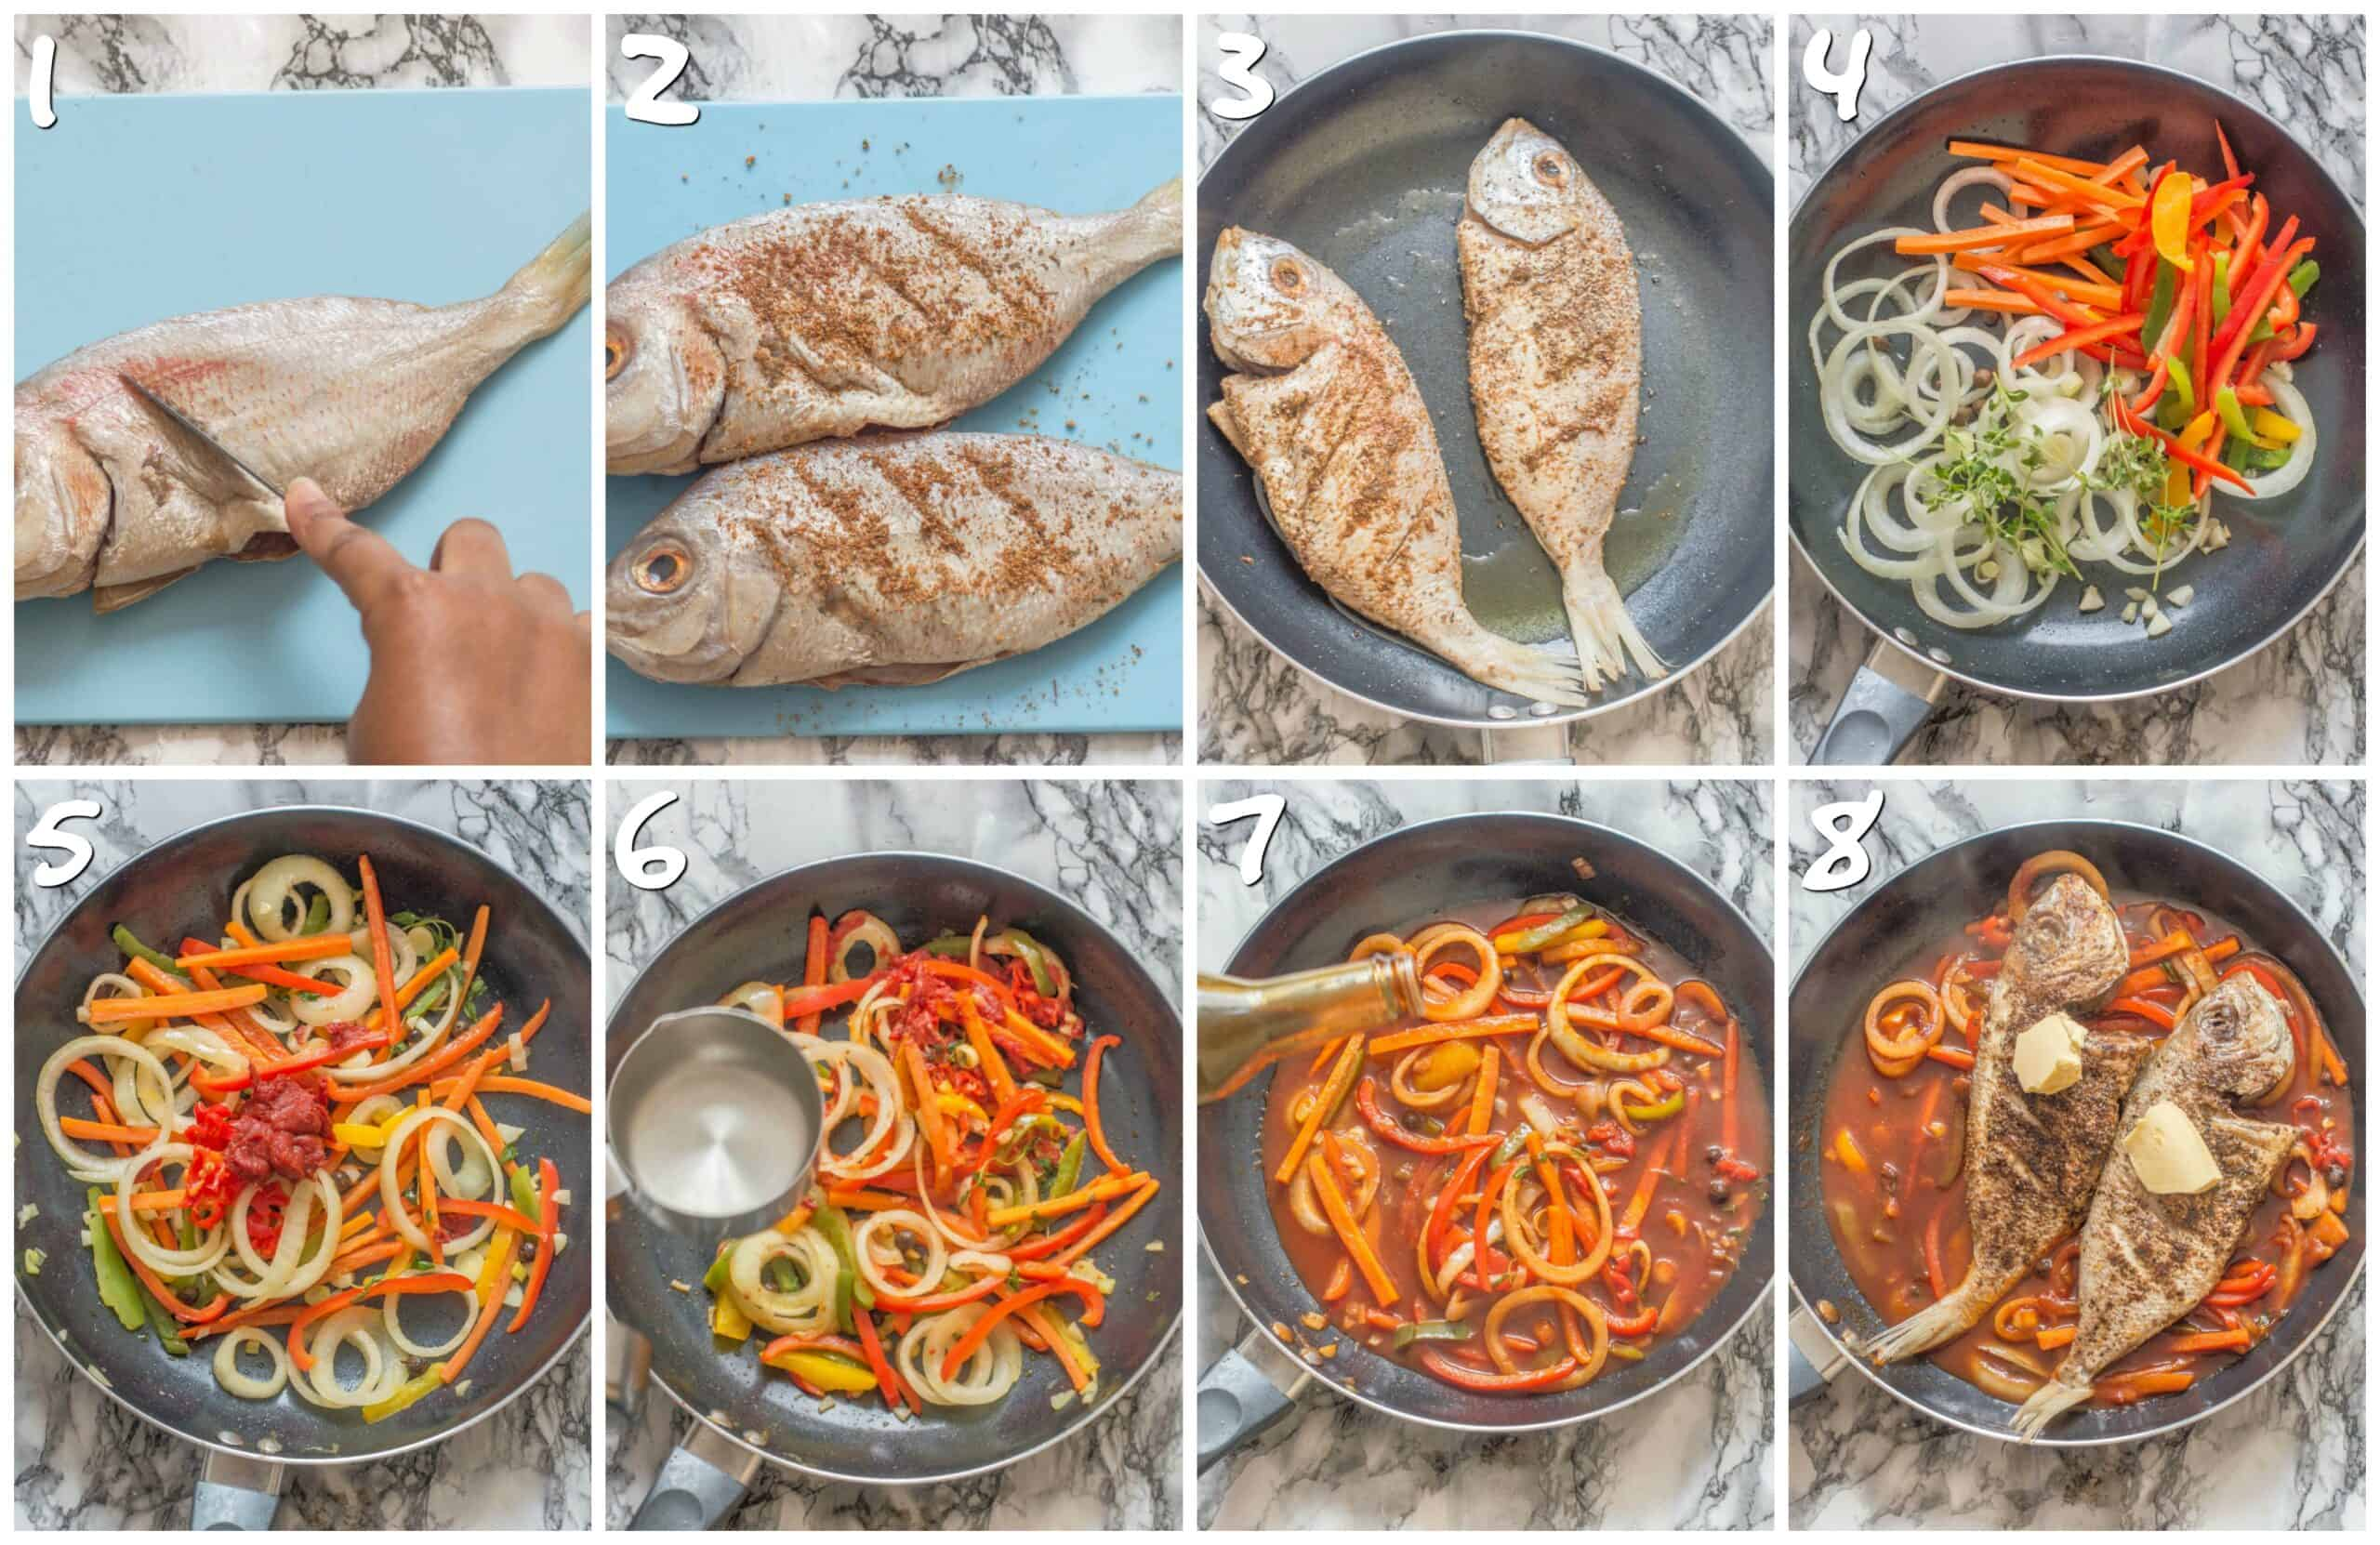 steps 1-8 seasoning and making the stew fish